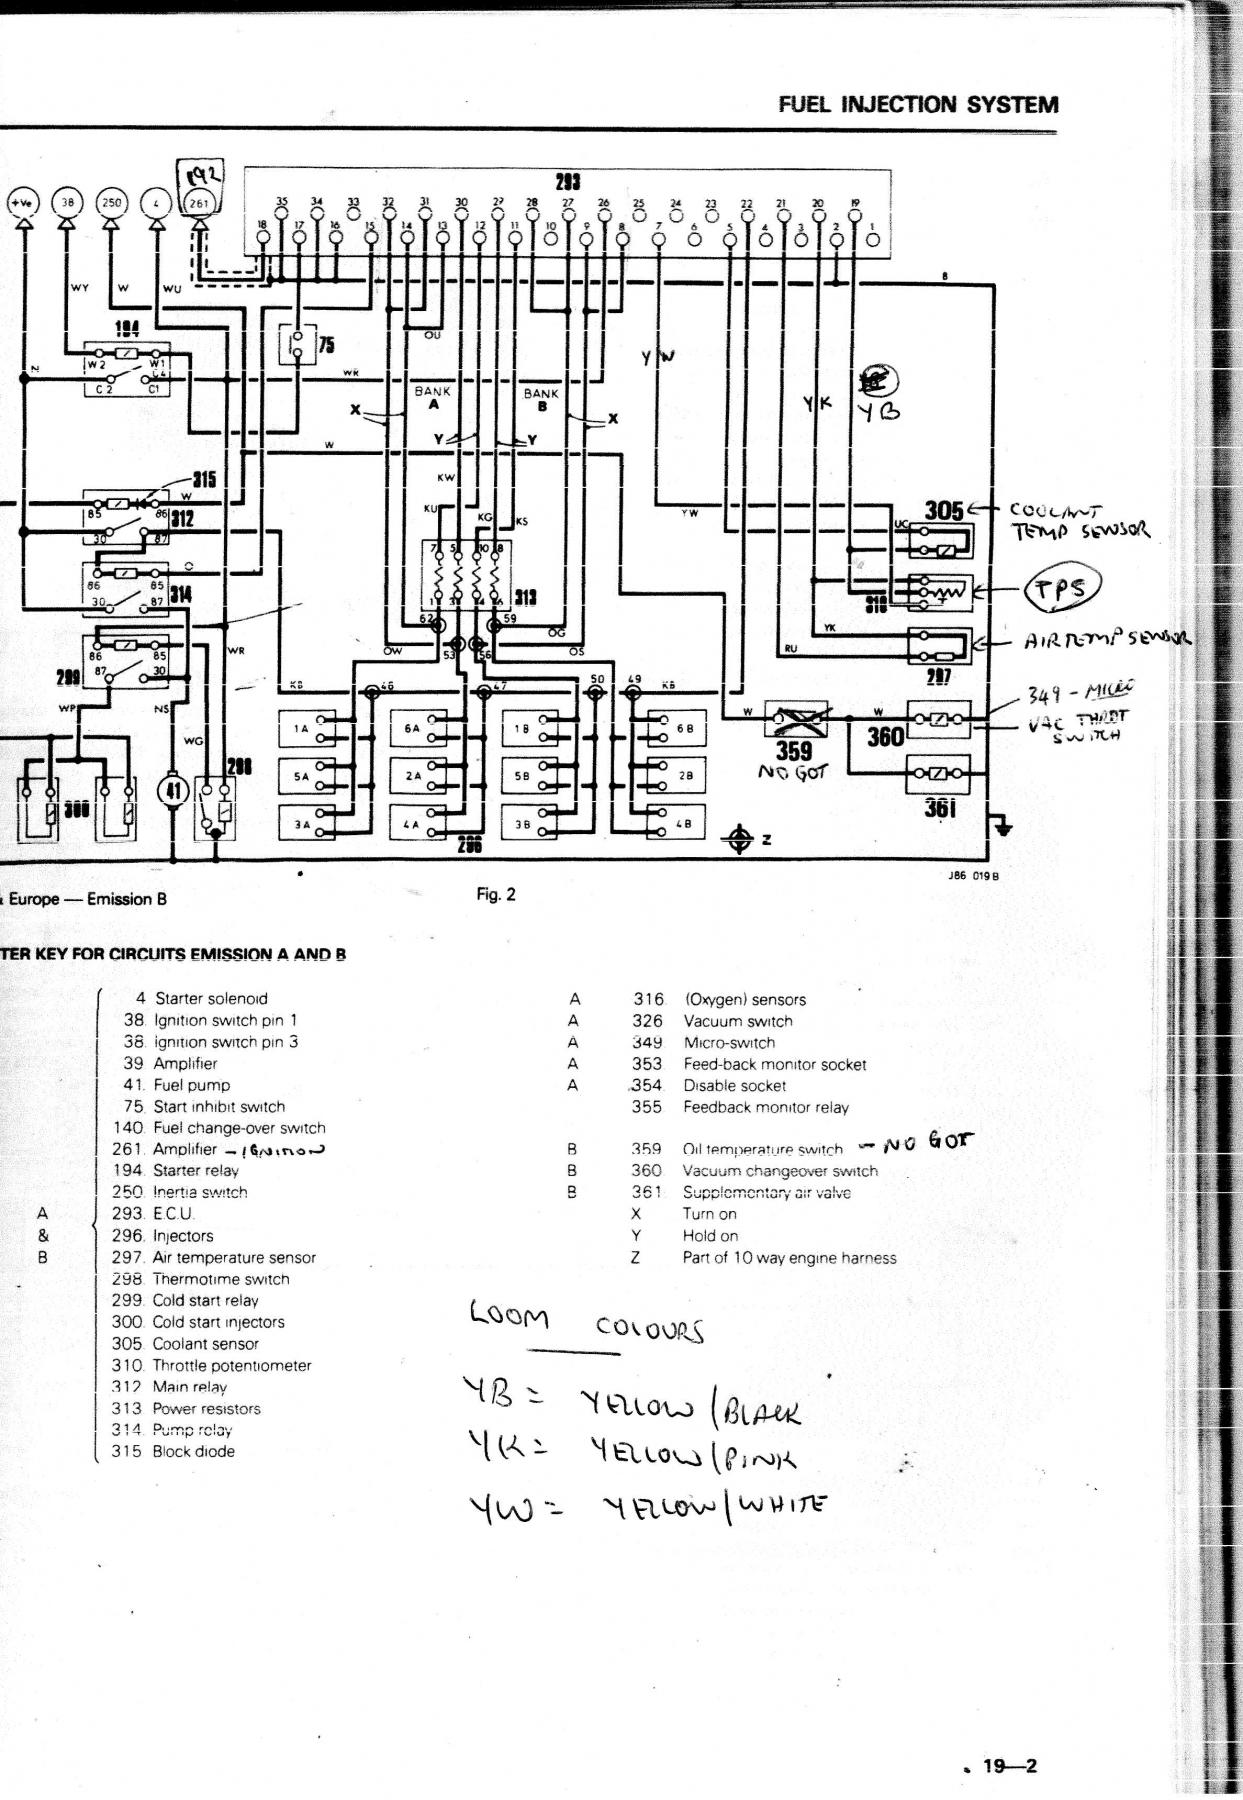 1990 jaguar xjs fuse box diagram